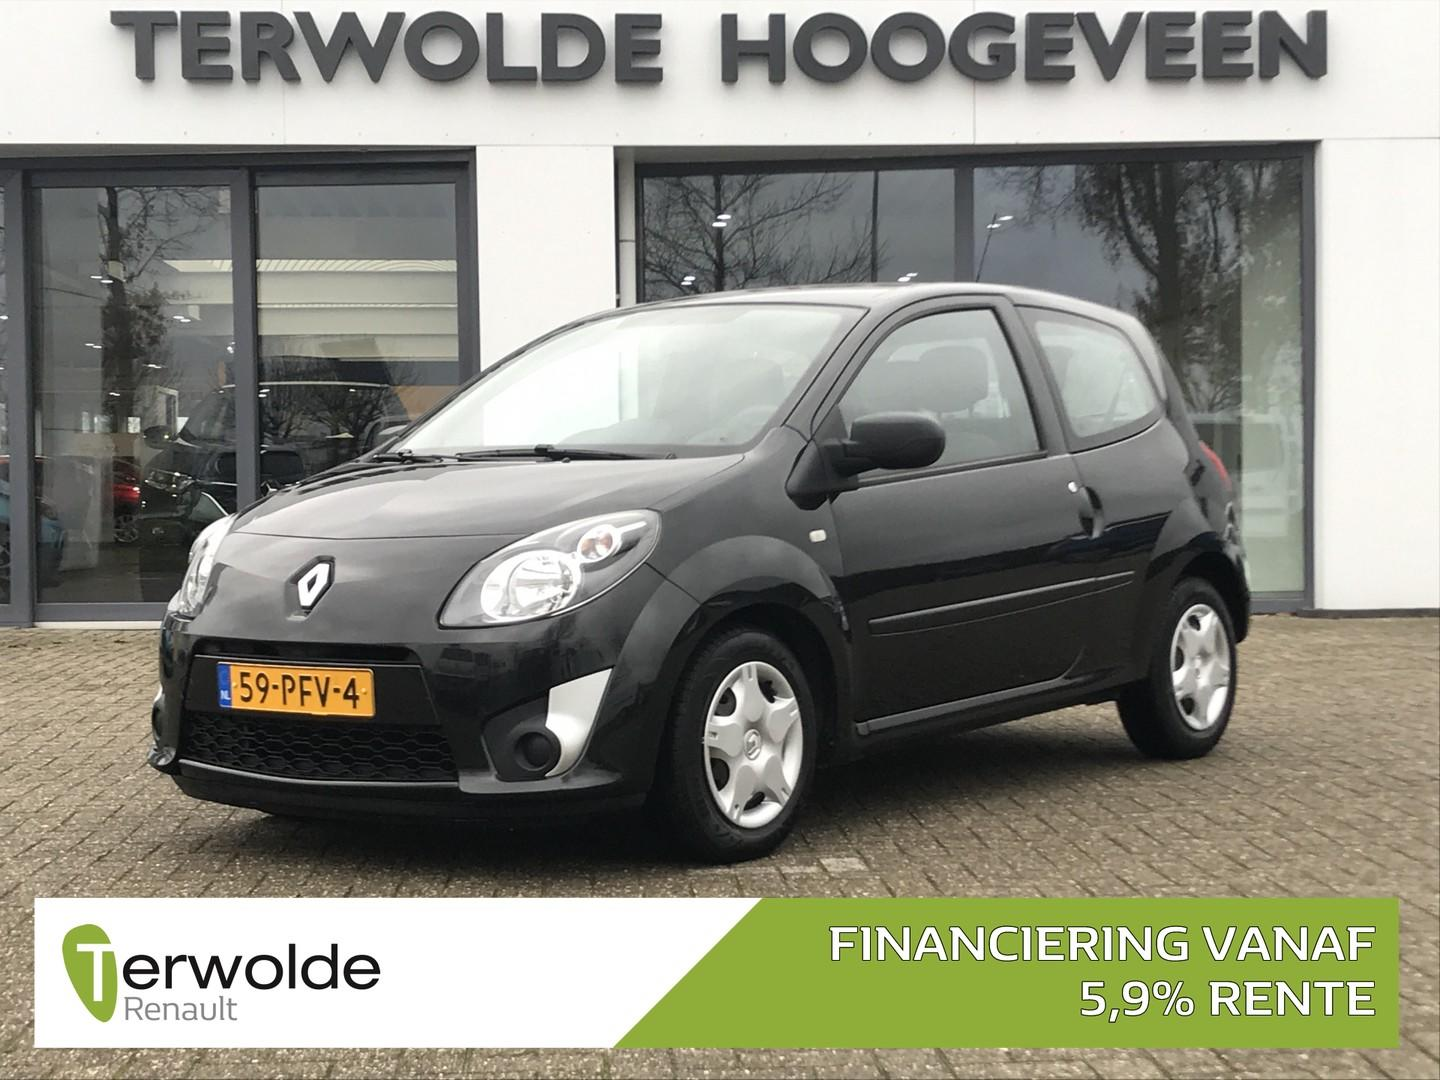 Renault Twingo 1.2-16v 75pk authentique airco